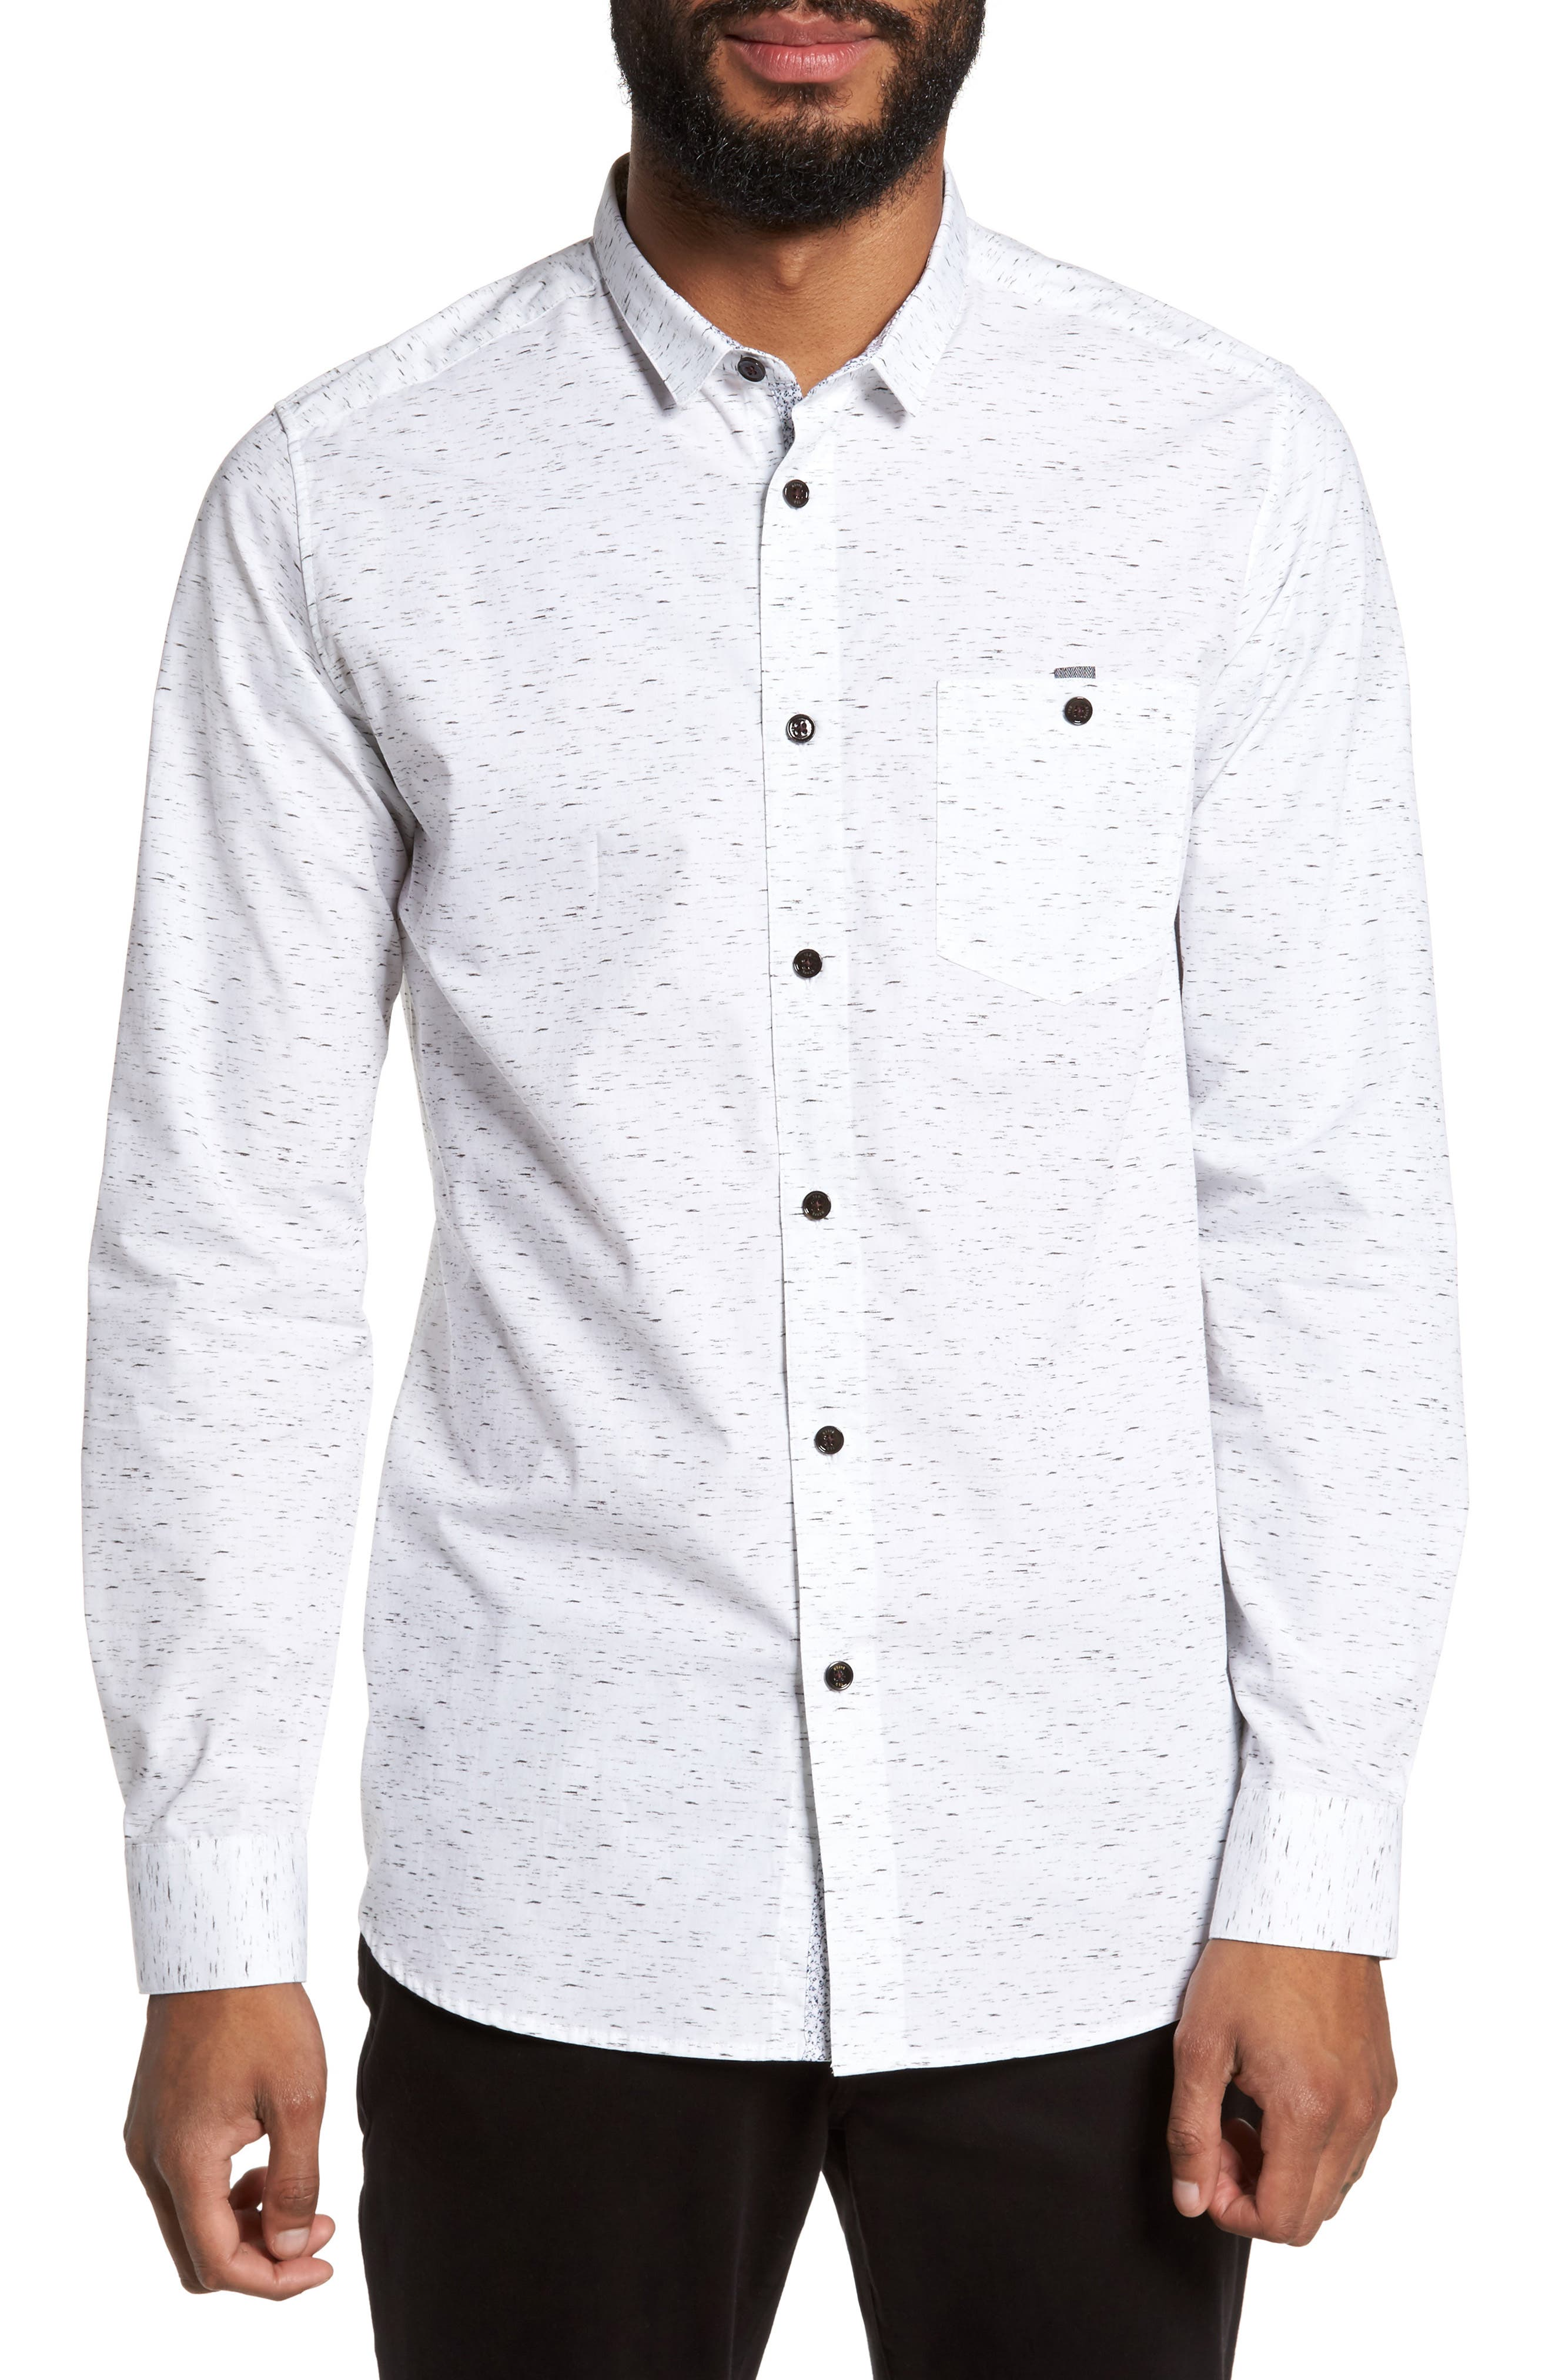 Nep Print Sport Shirt,                             Main thumbnail 1, color,                             White